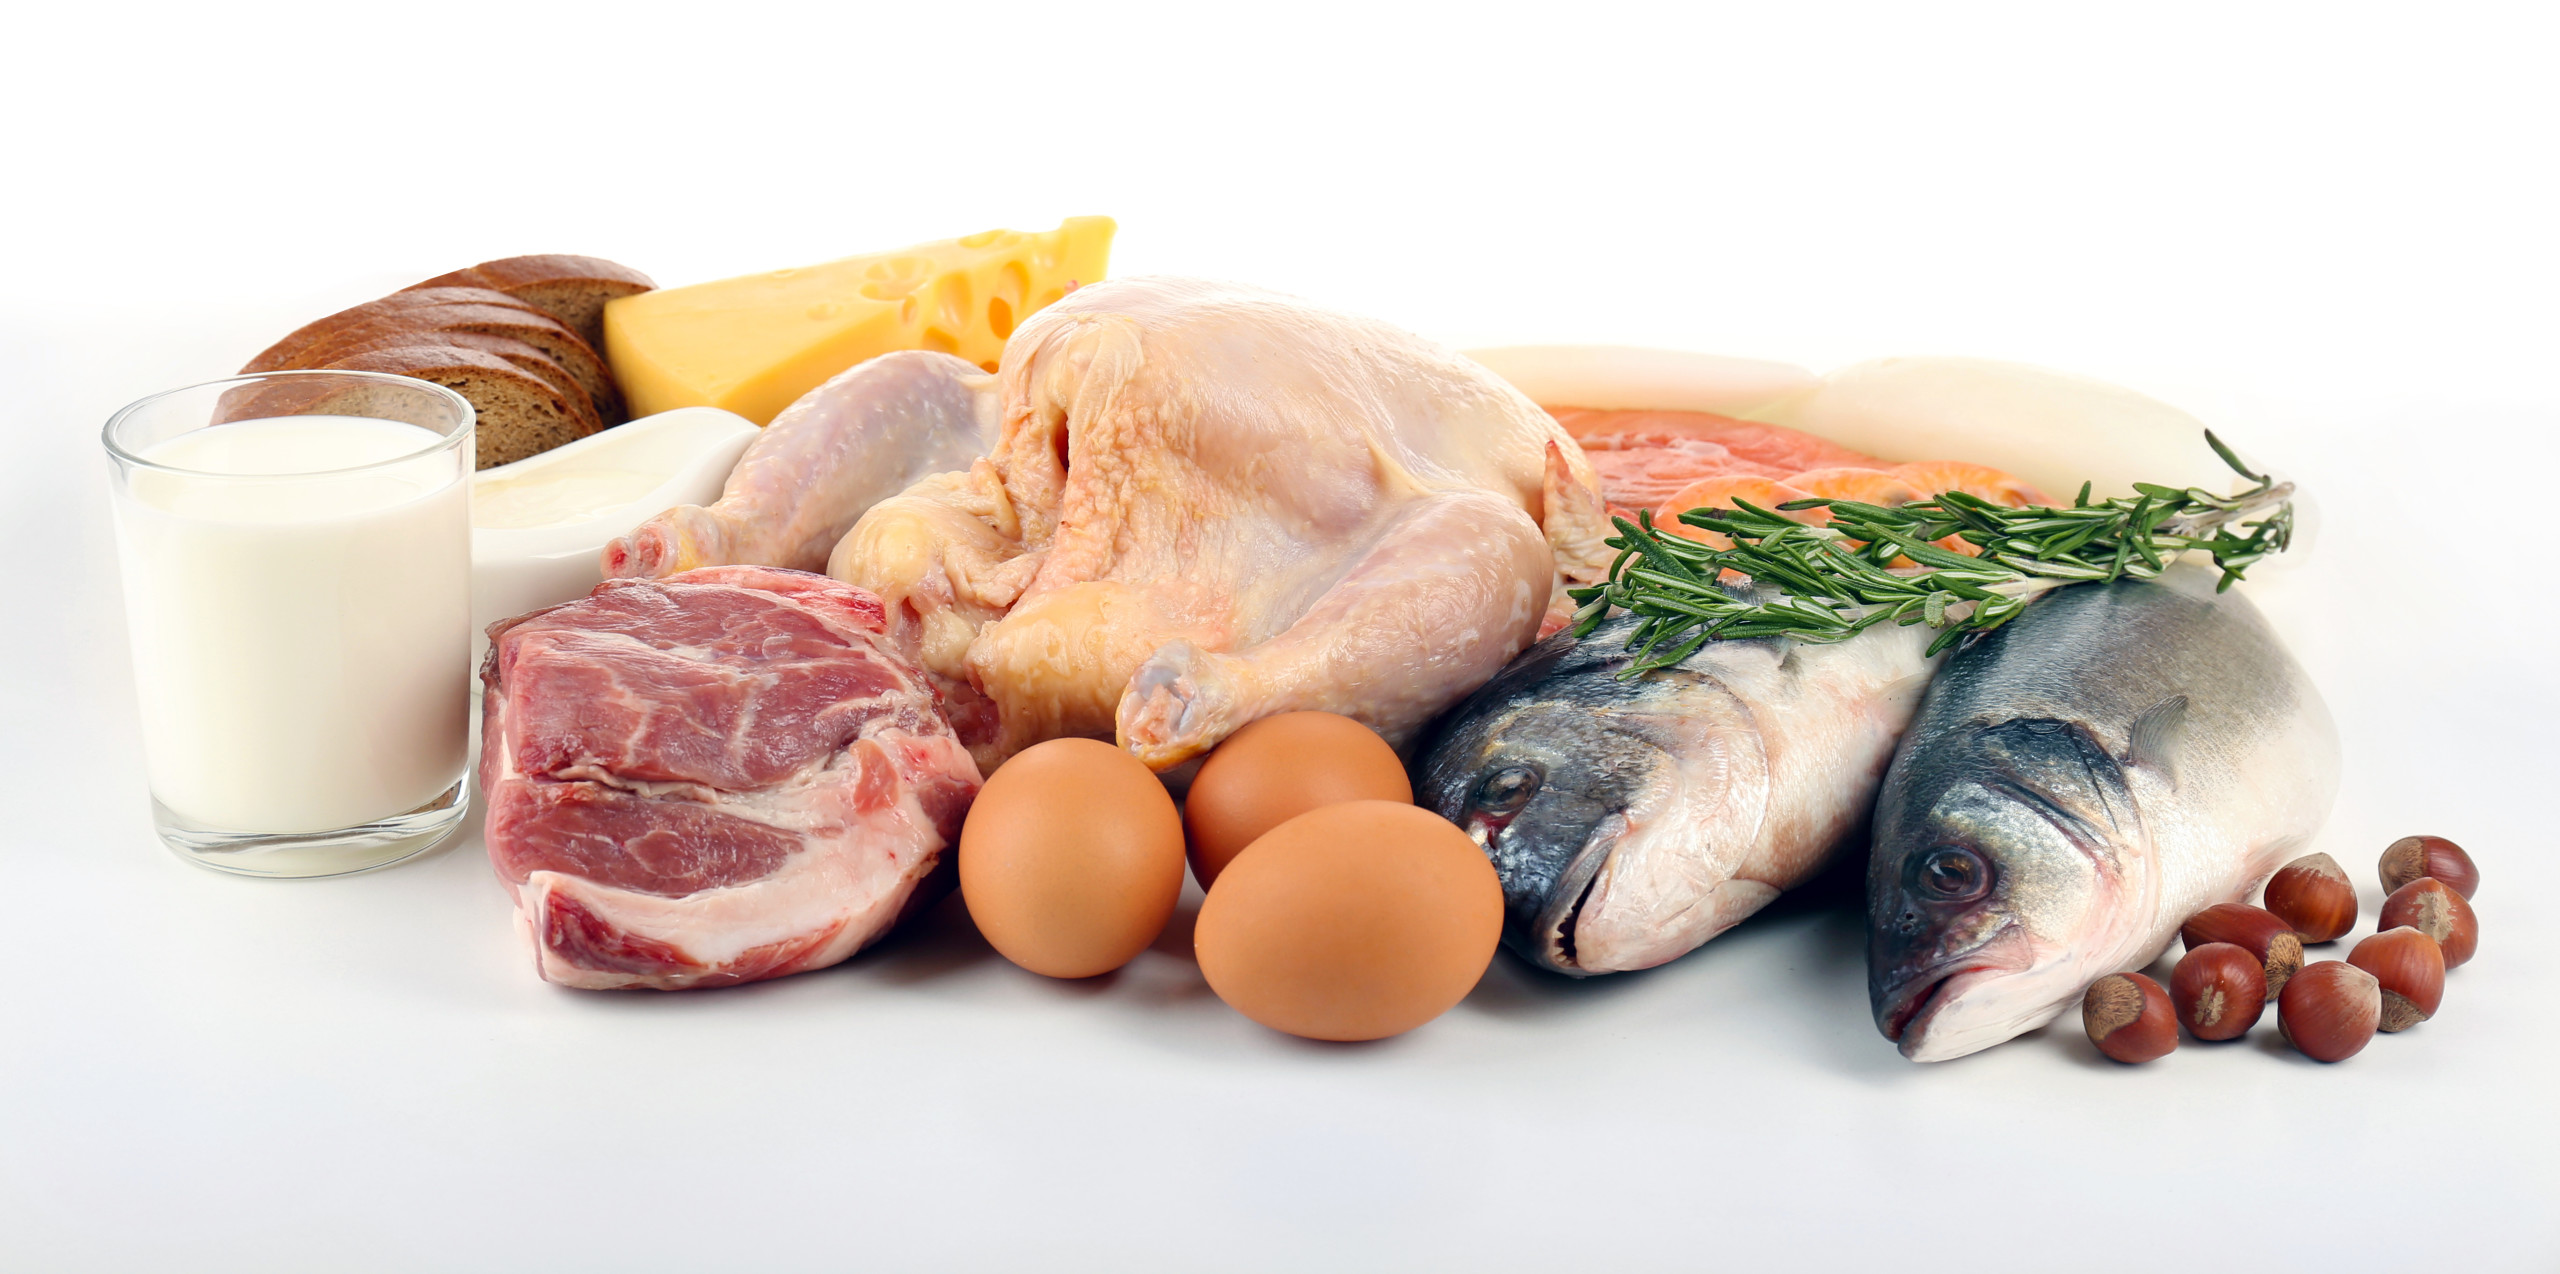 bigstock-Food-high-in-protein-isolated-76403156-e1448554614634